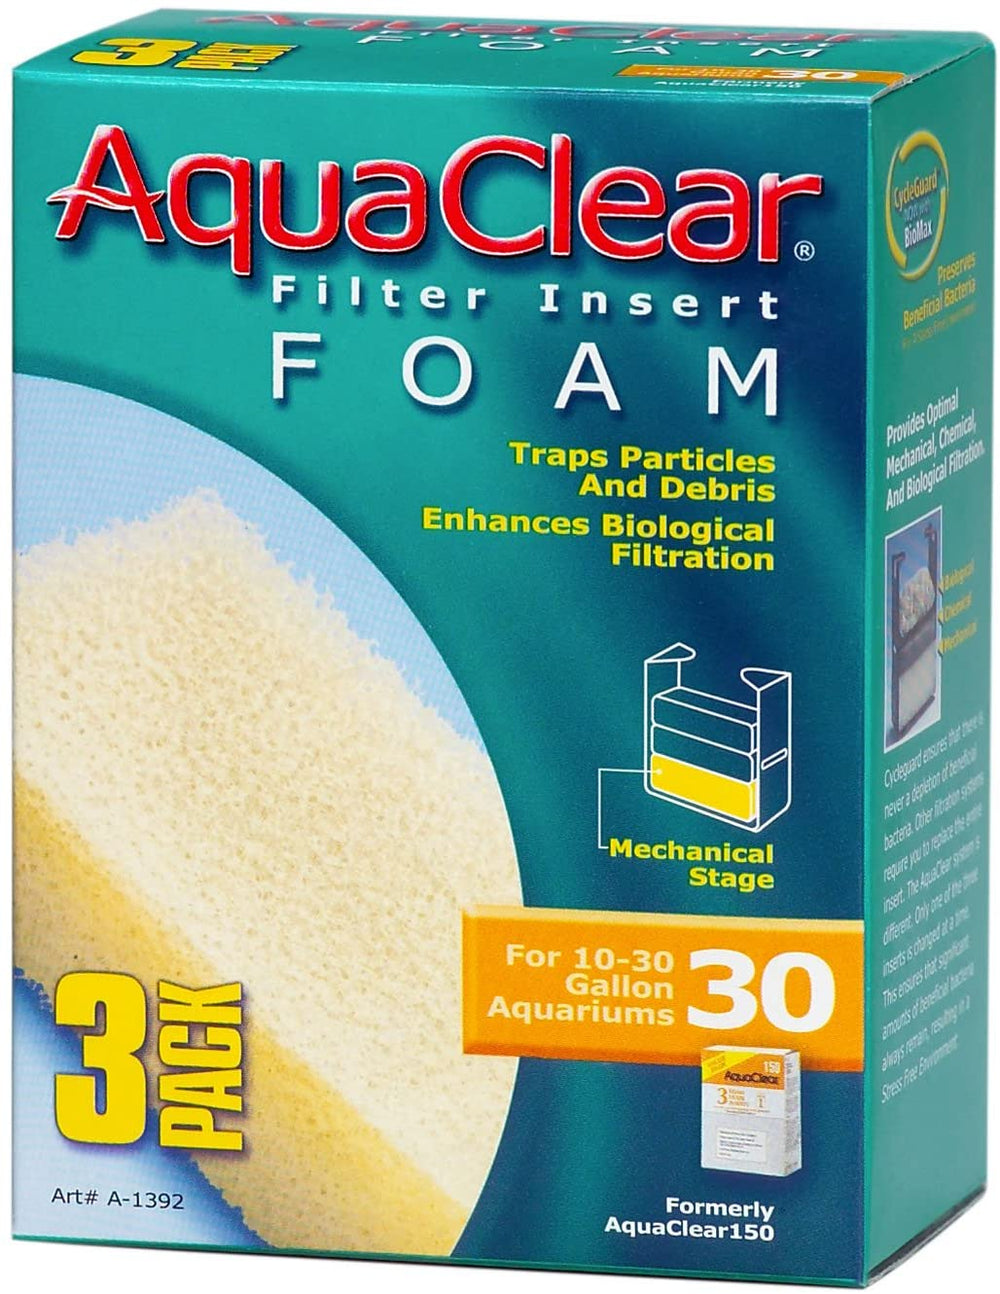 AquaClear 30 Foam